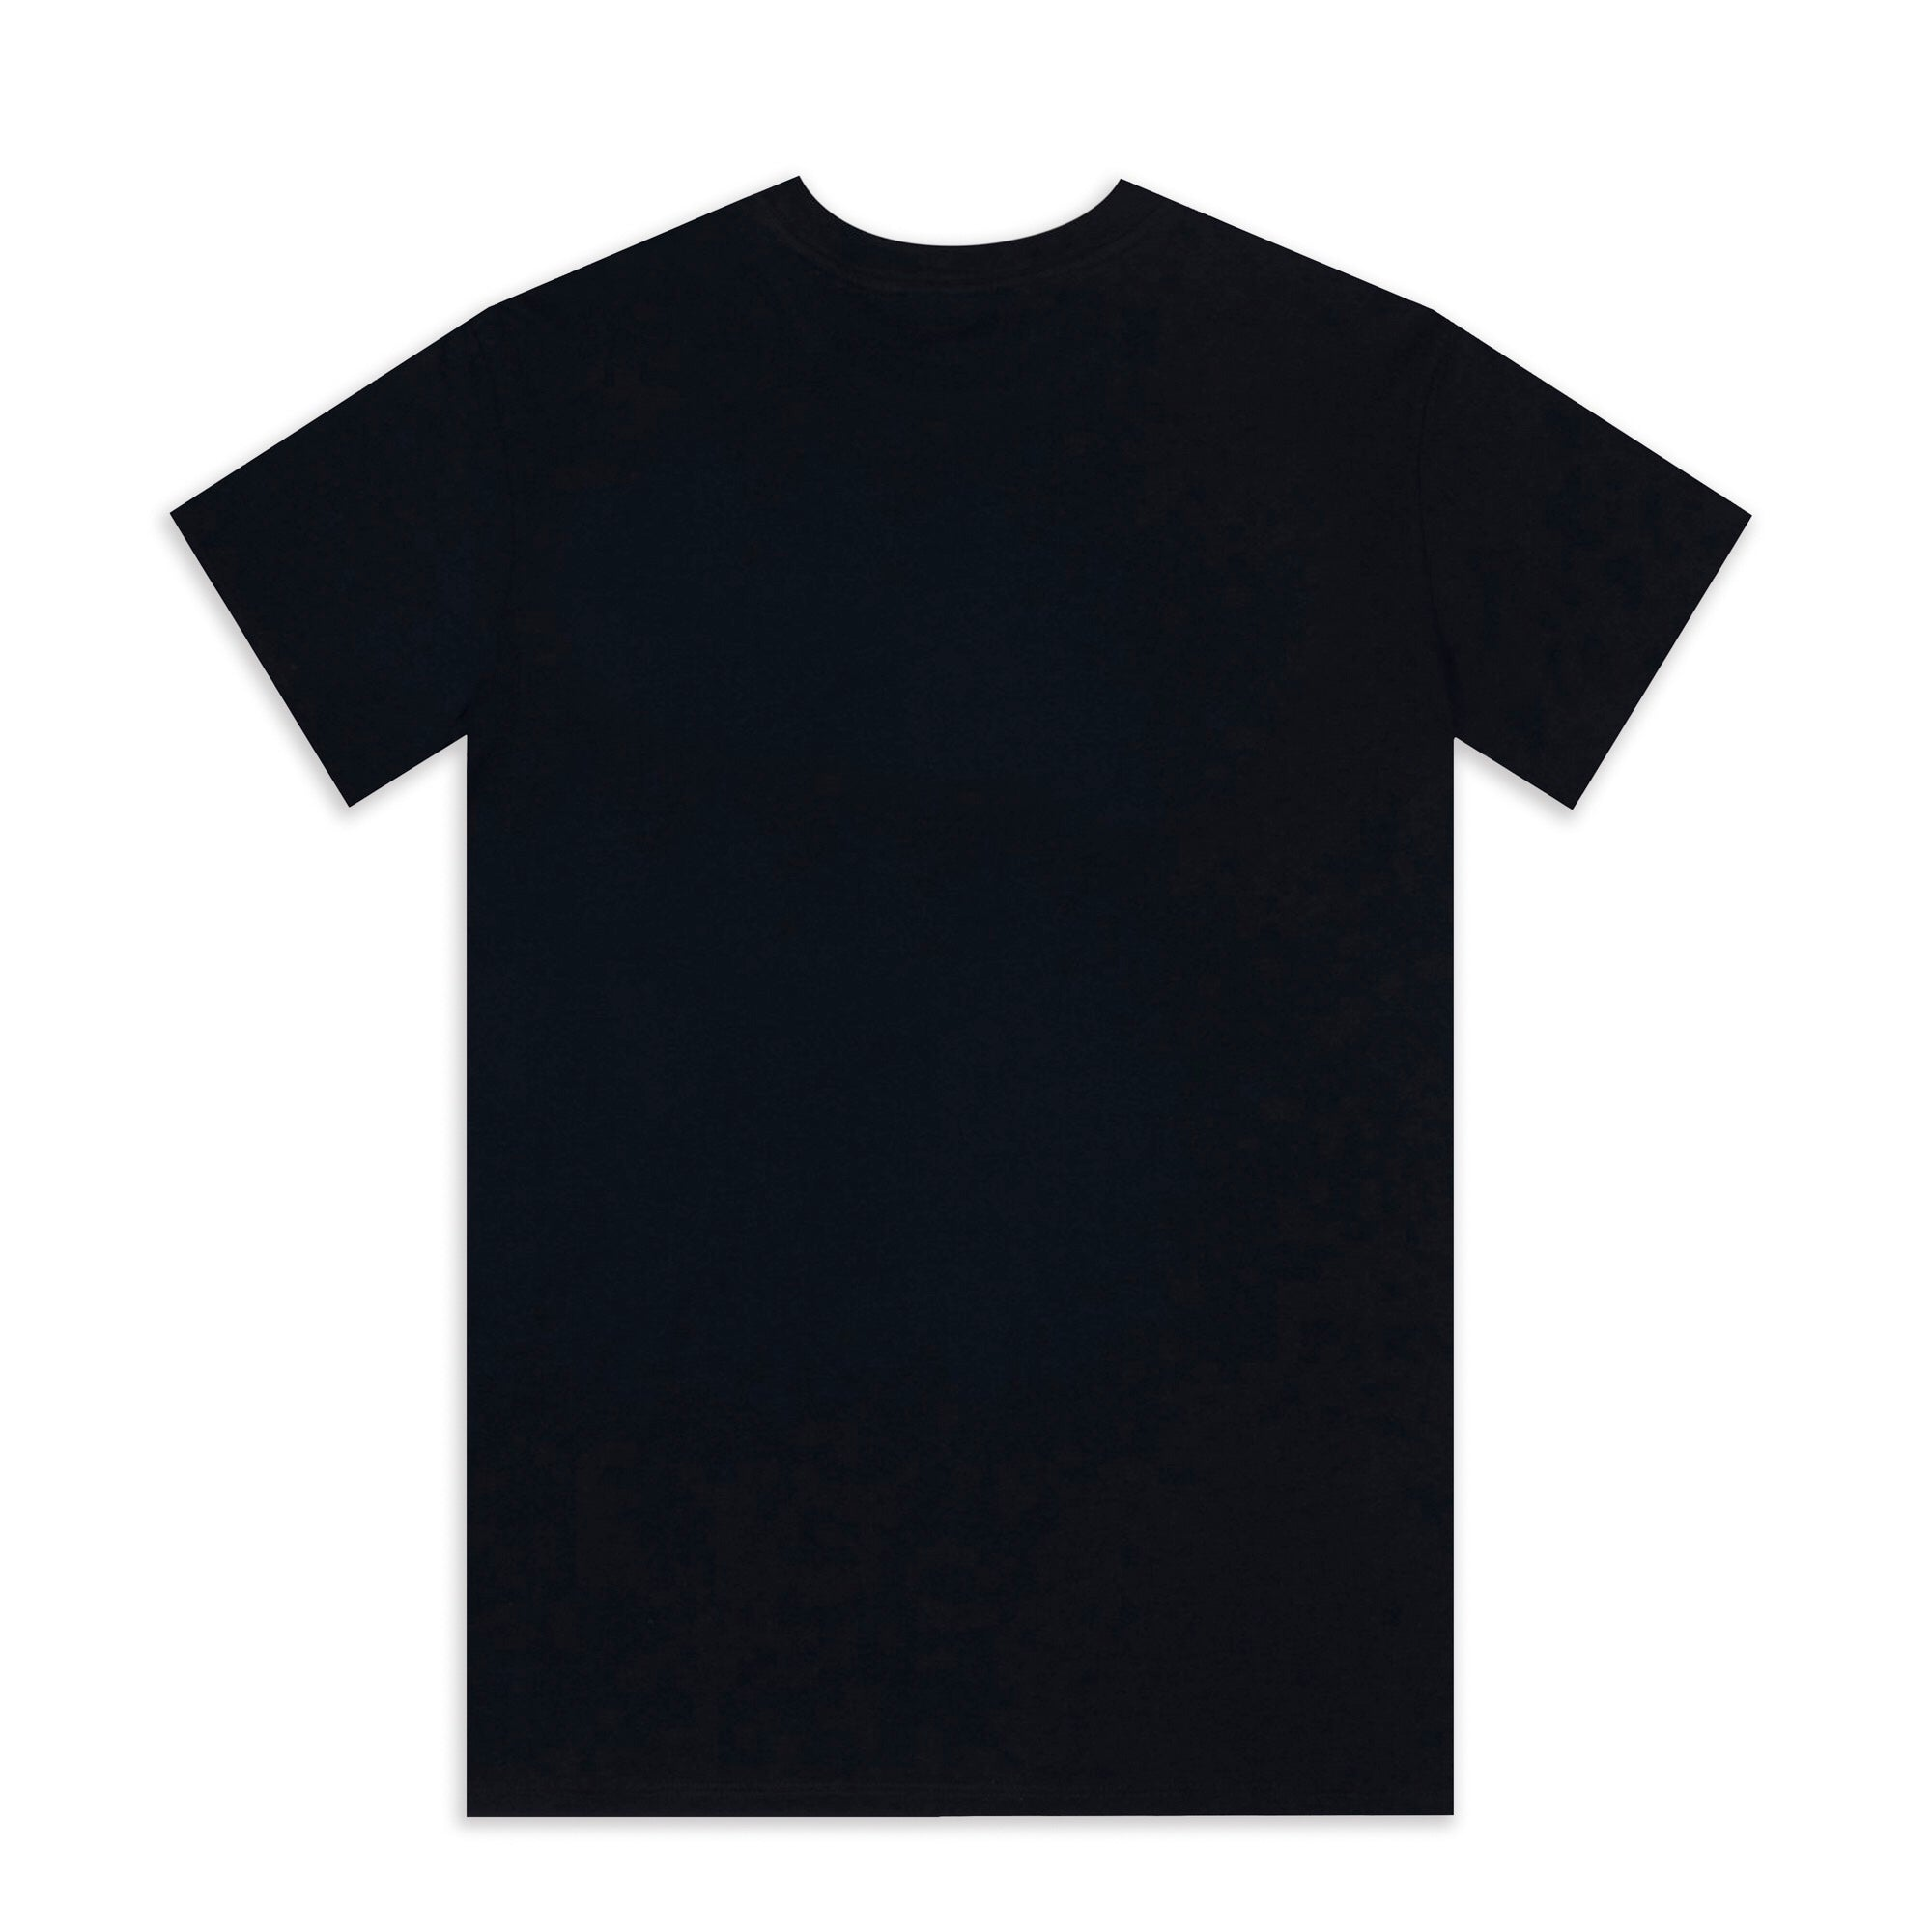 Stitch T-Shirt Black